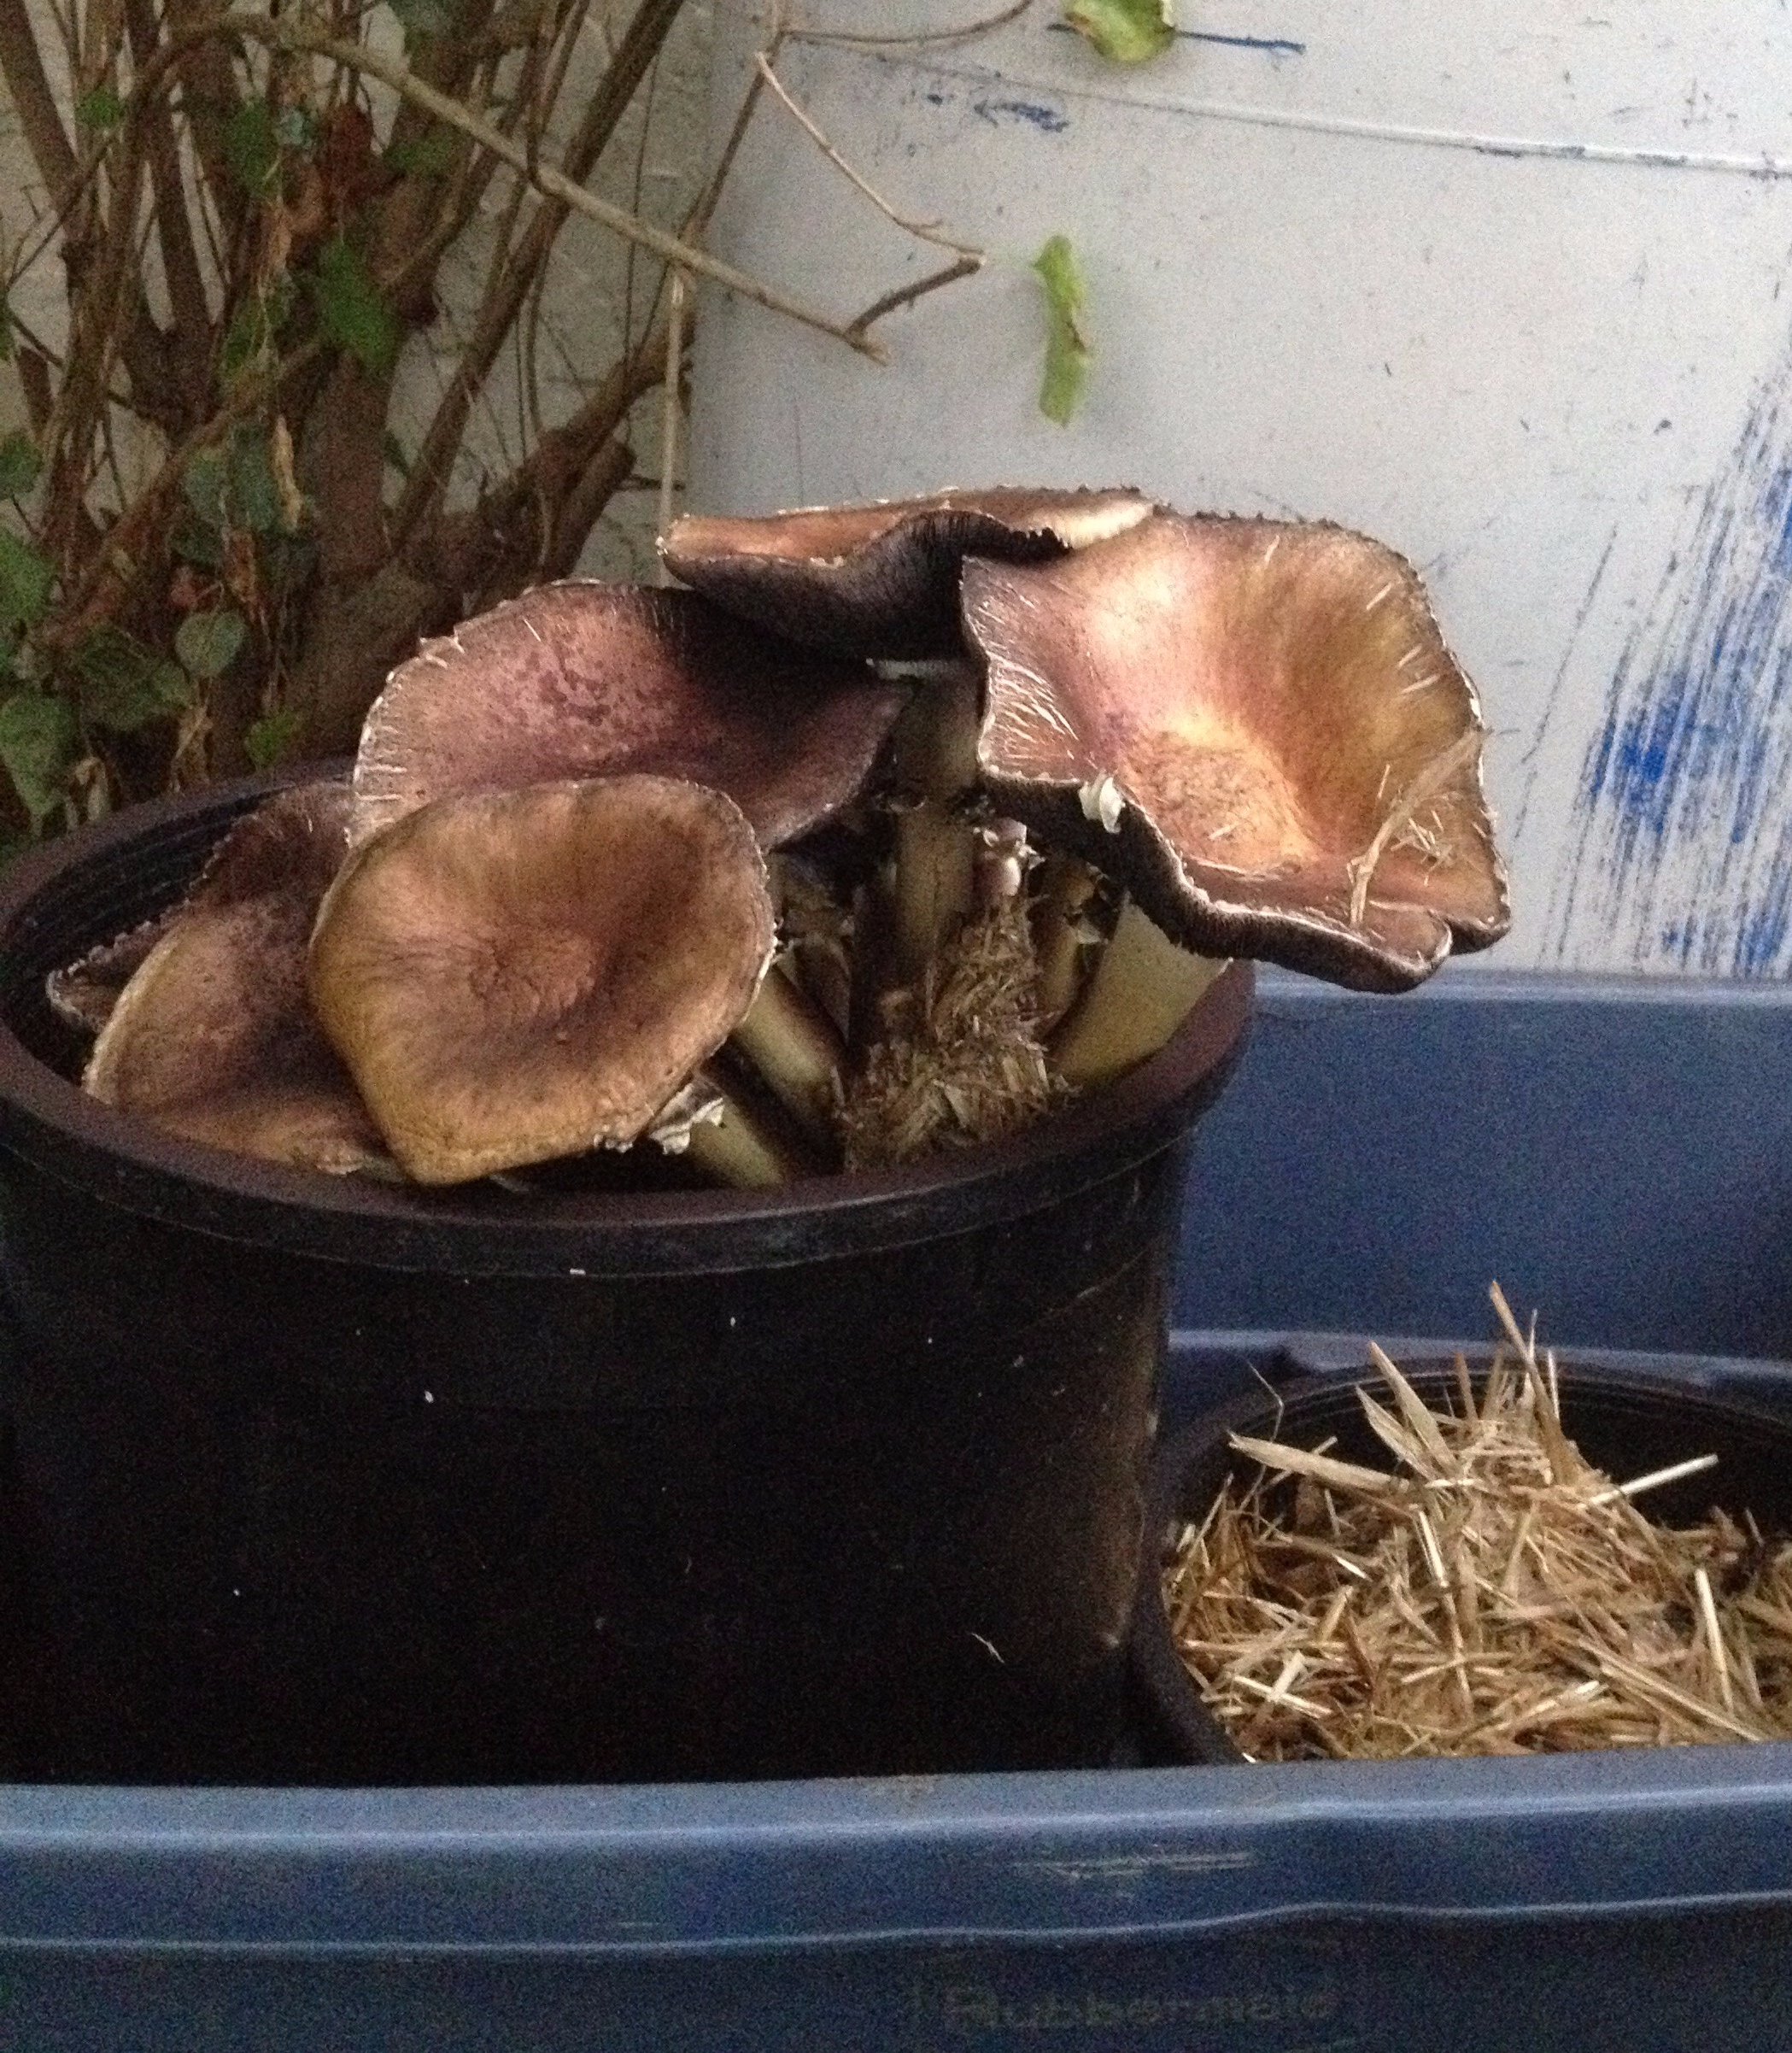 King Stropharia growing in pots